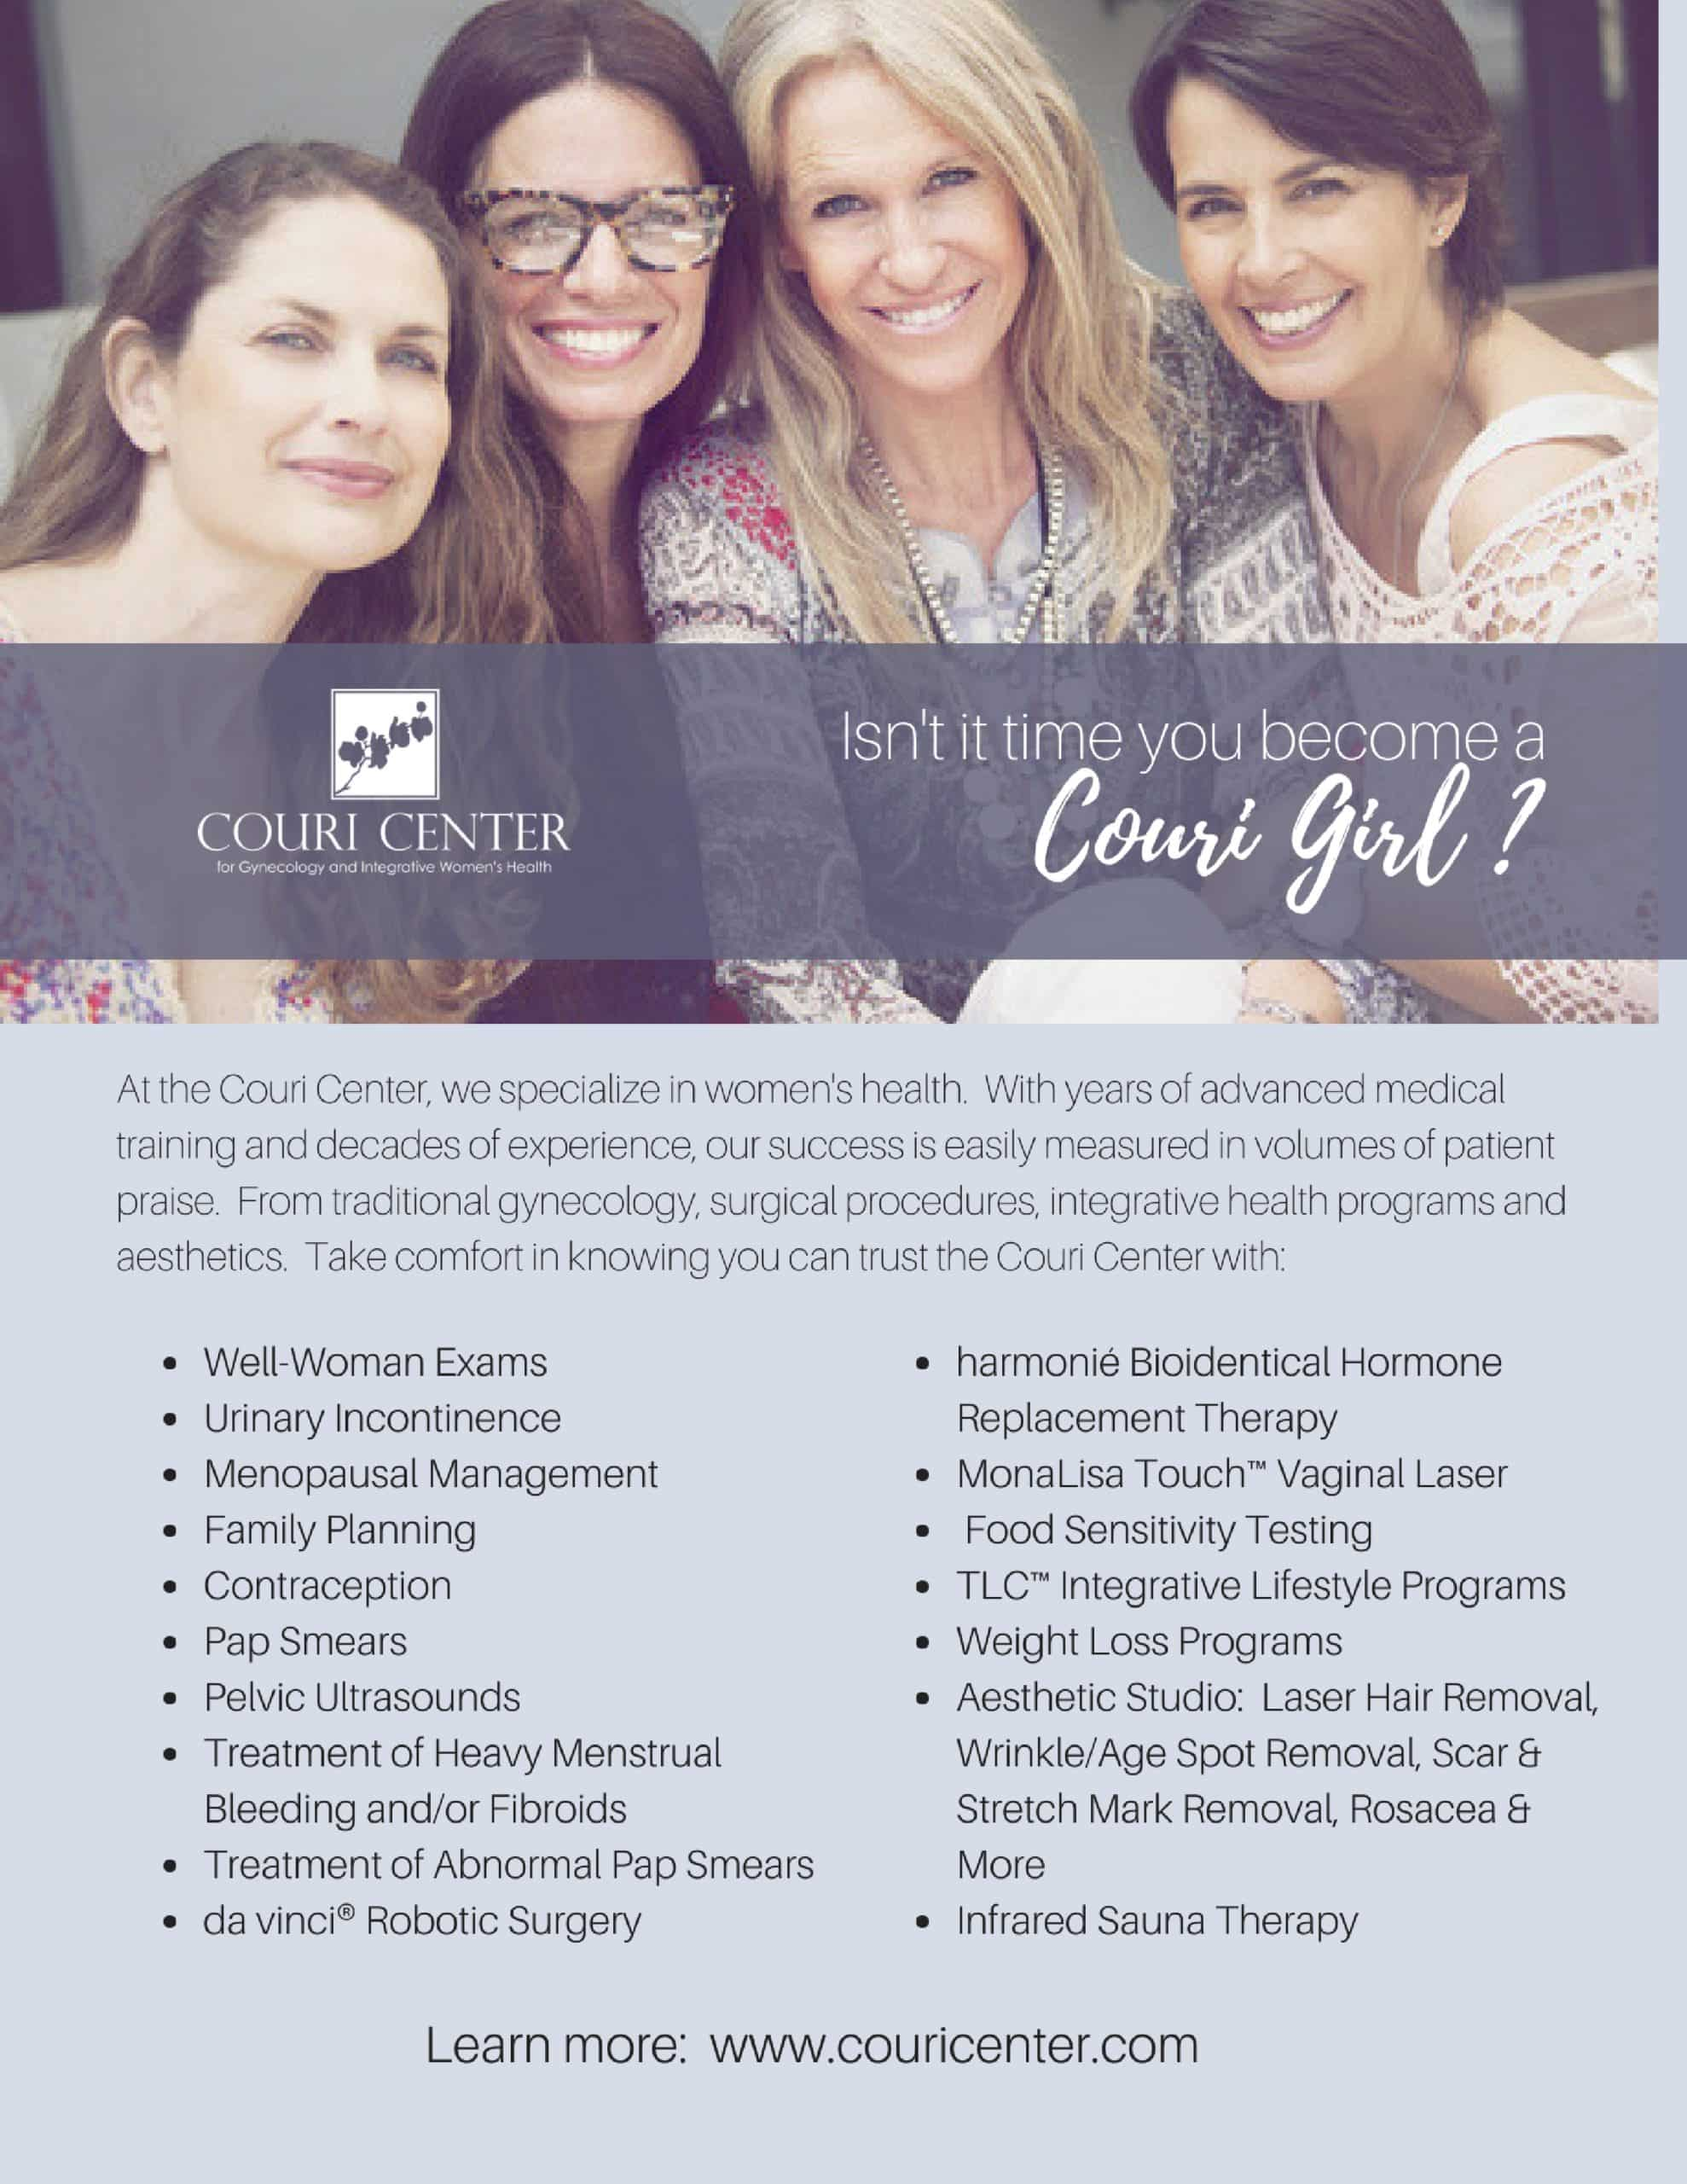 Isn't it time you became a Couri Girl?